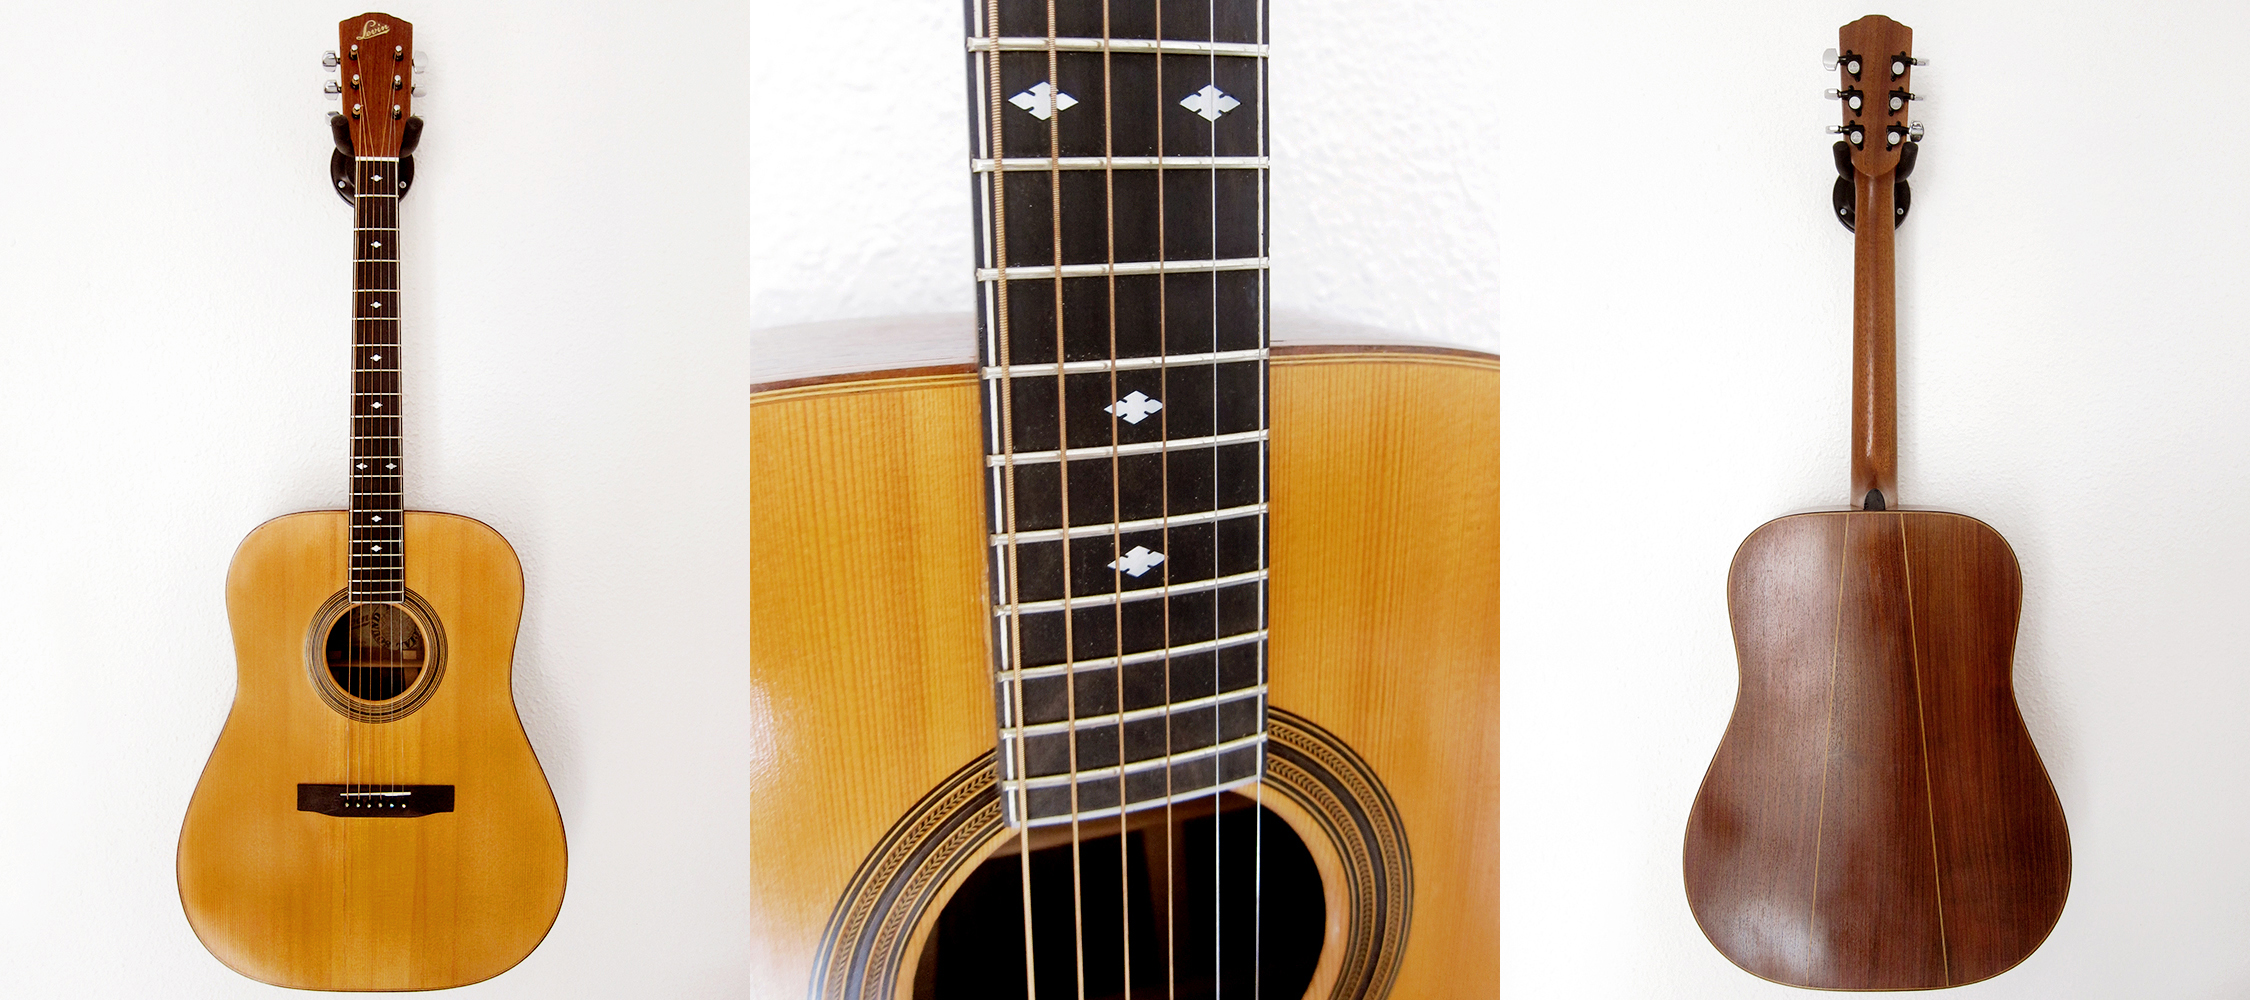 Levin W-30 Made in Sweden 1979